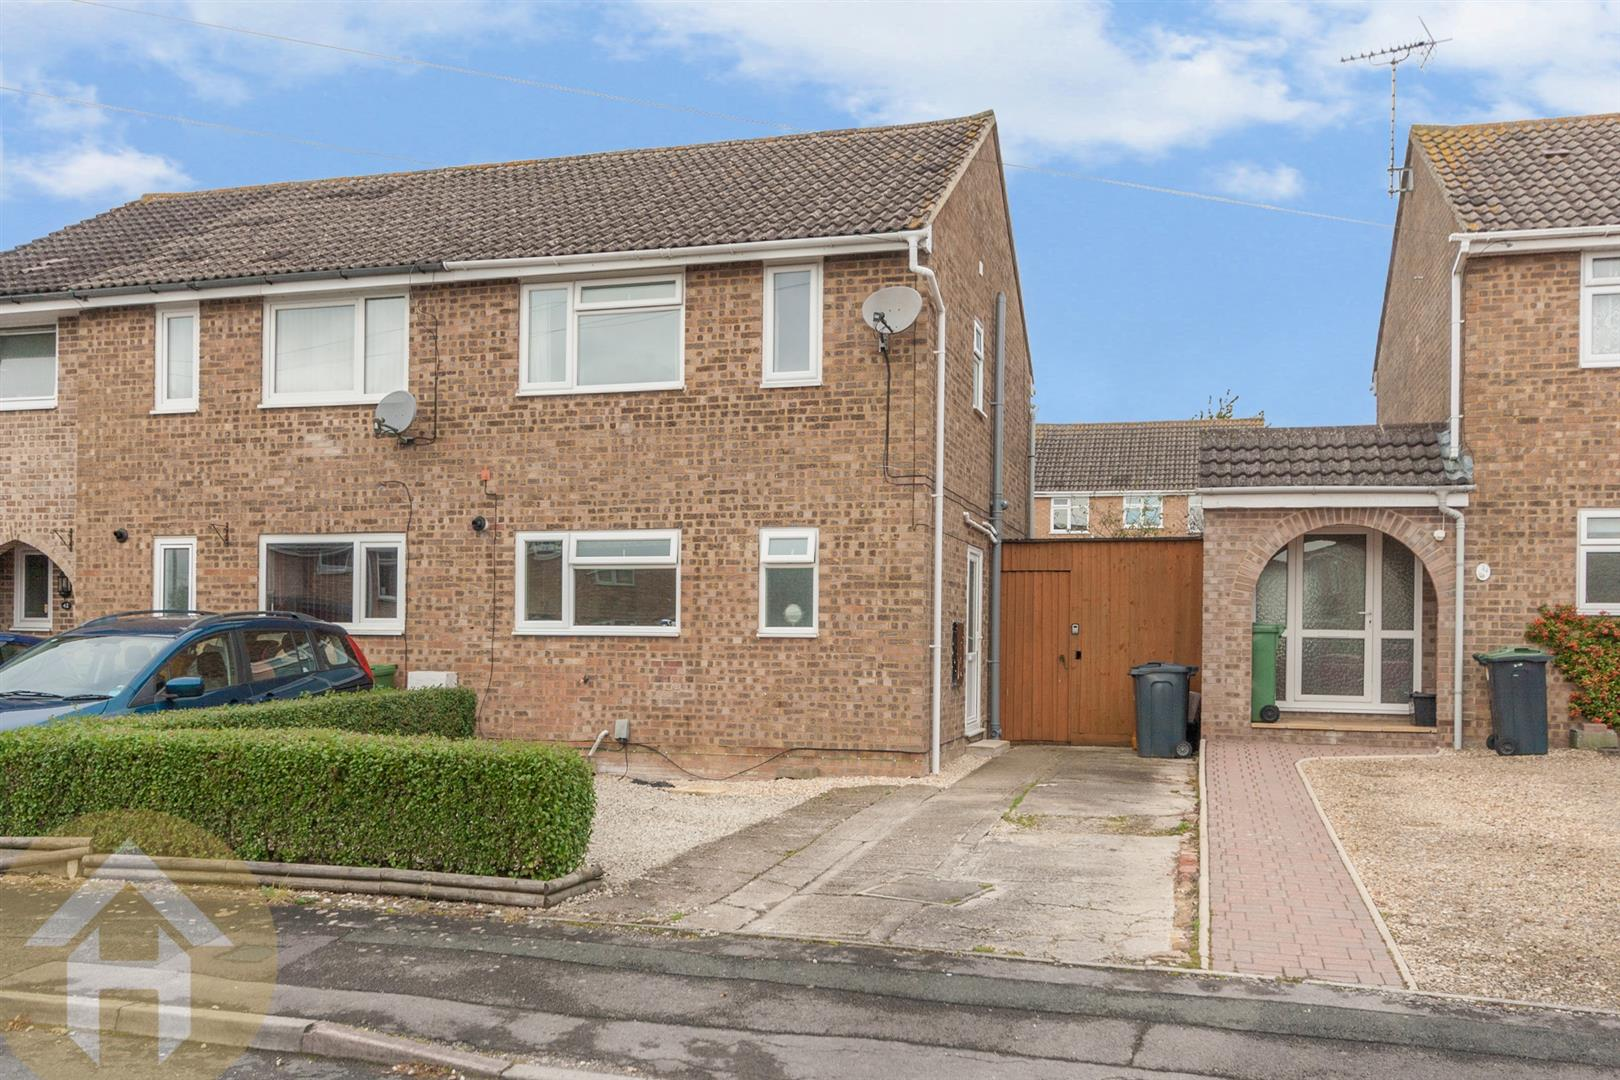 3 Bedrooms Semi Detached House for sale in Coleridge Close, Royal Wootton Bassett